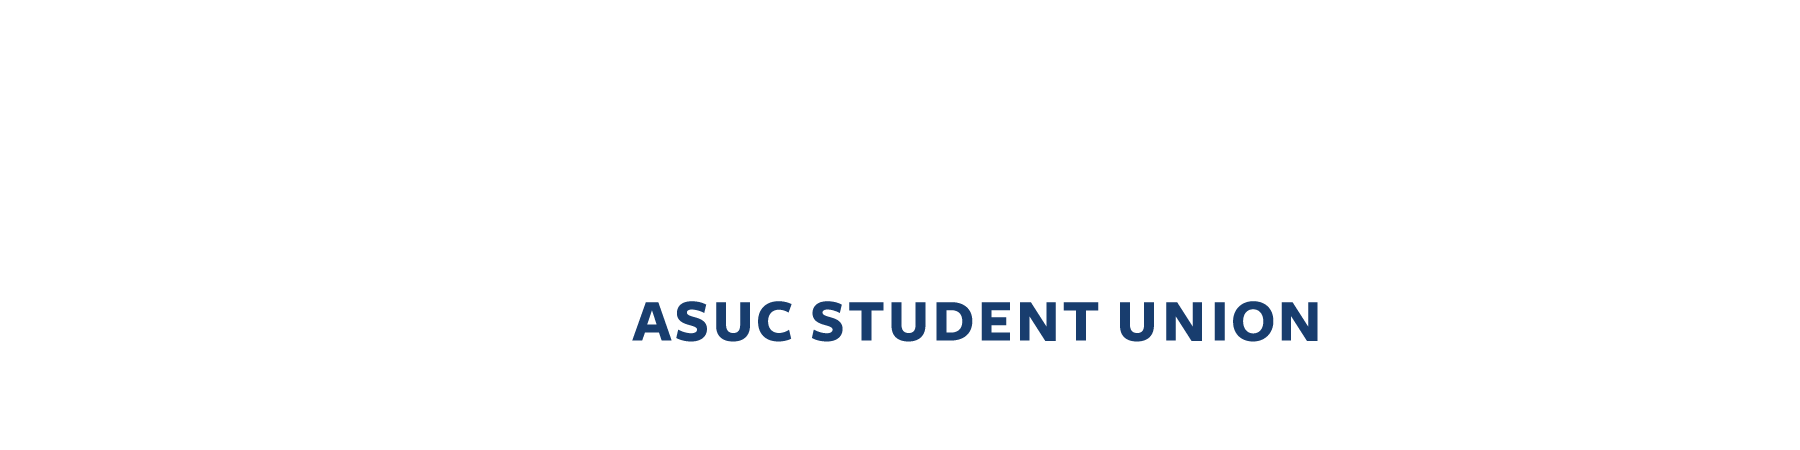 Download event services logo Horizontal in white